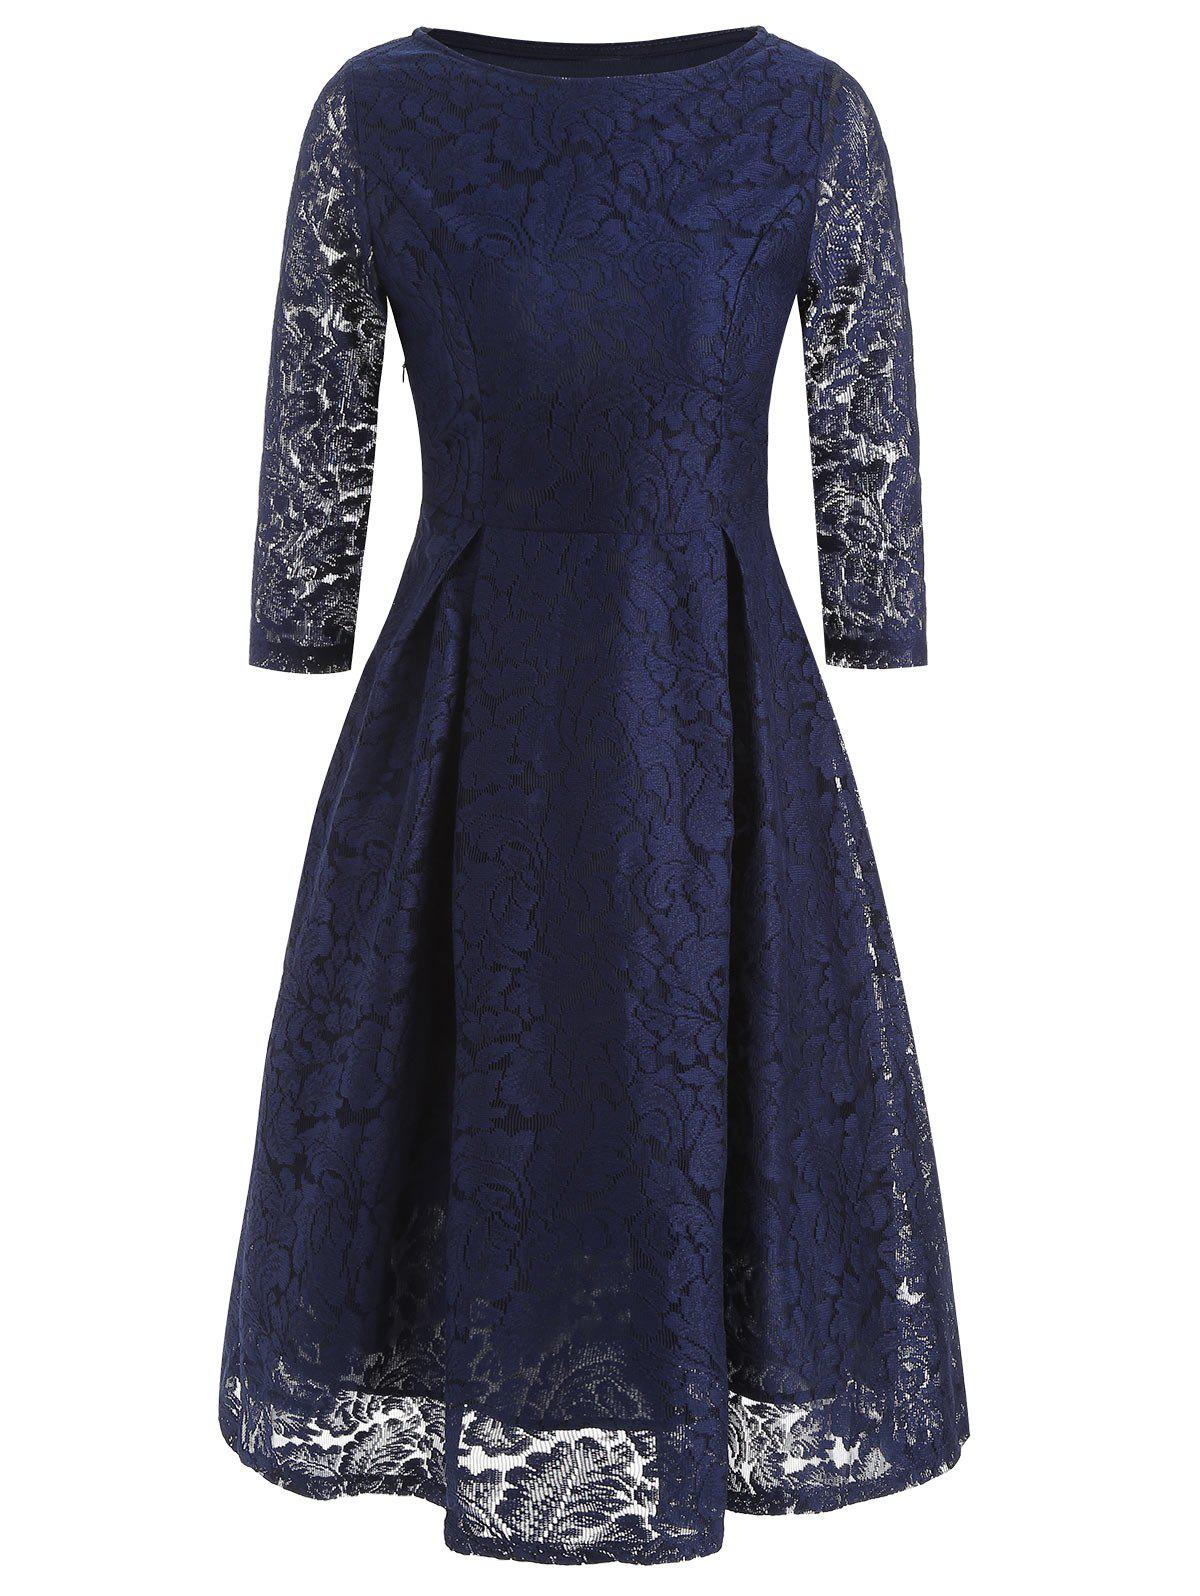 Fancy Lace Boat Neck A Line Dress